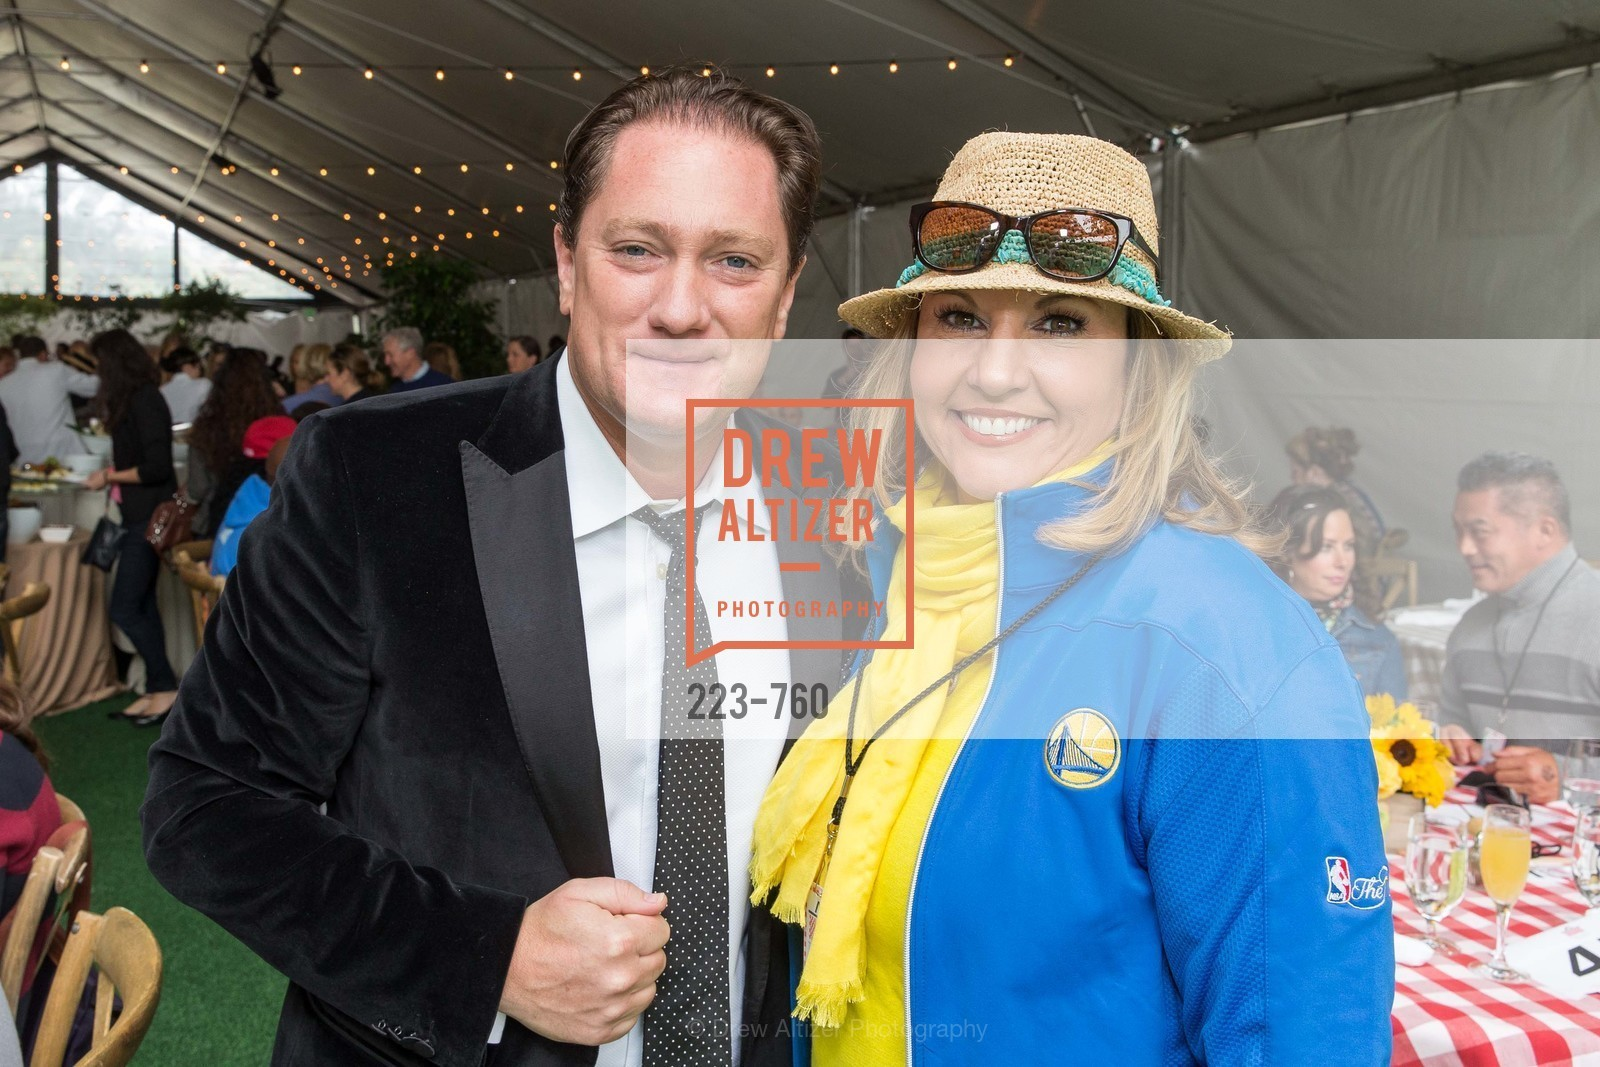 Liam Mayclem, Anne Marie Presutti, The Big Picnic! A Benefit & Concert for STERN GROVE FESTIVAL, US, June 14th, 2015,Drew Altizer, Drew Altizer Photography, full-service agency, private events, San Francisco photographer, photographer california